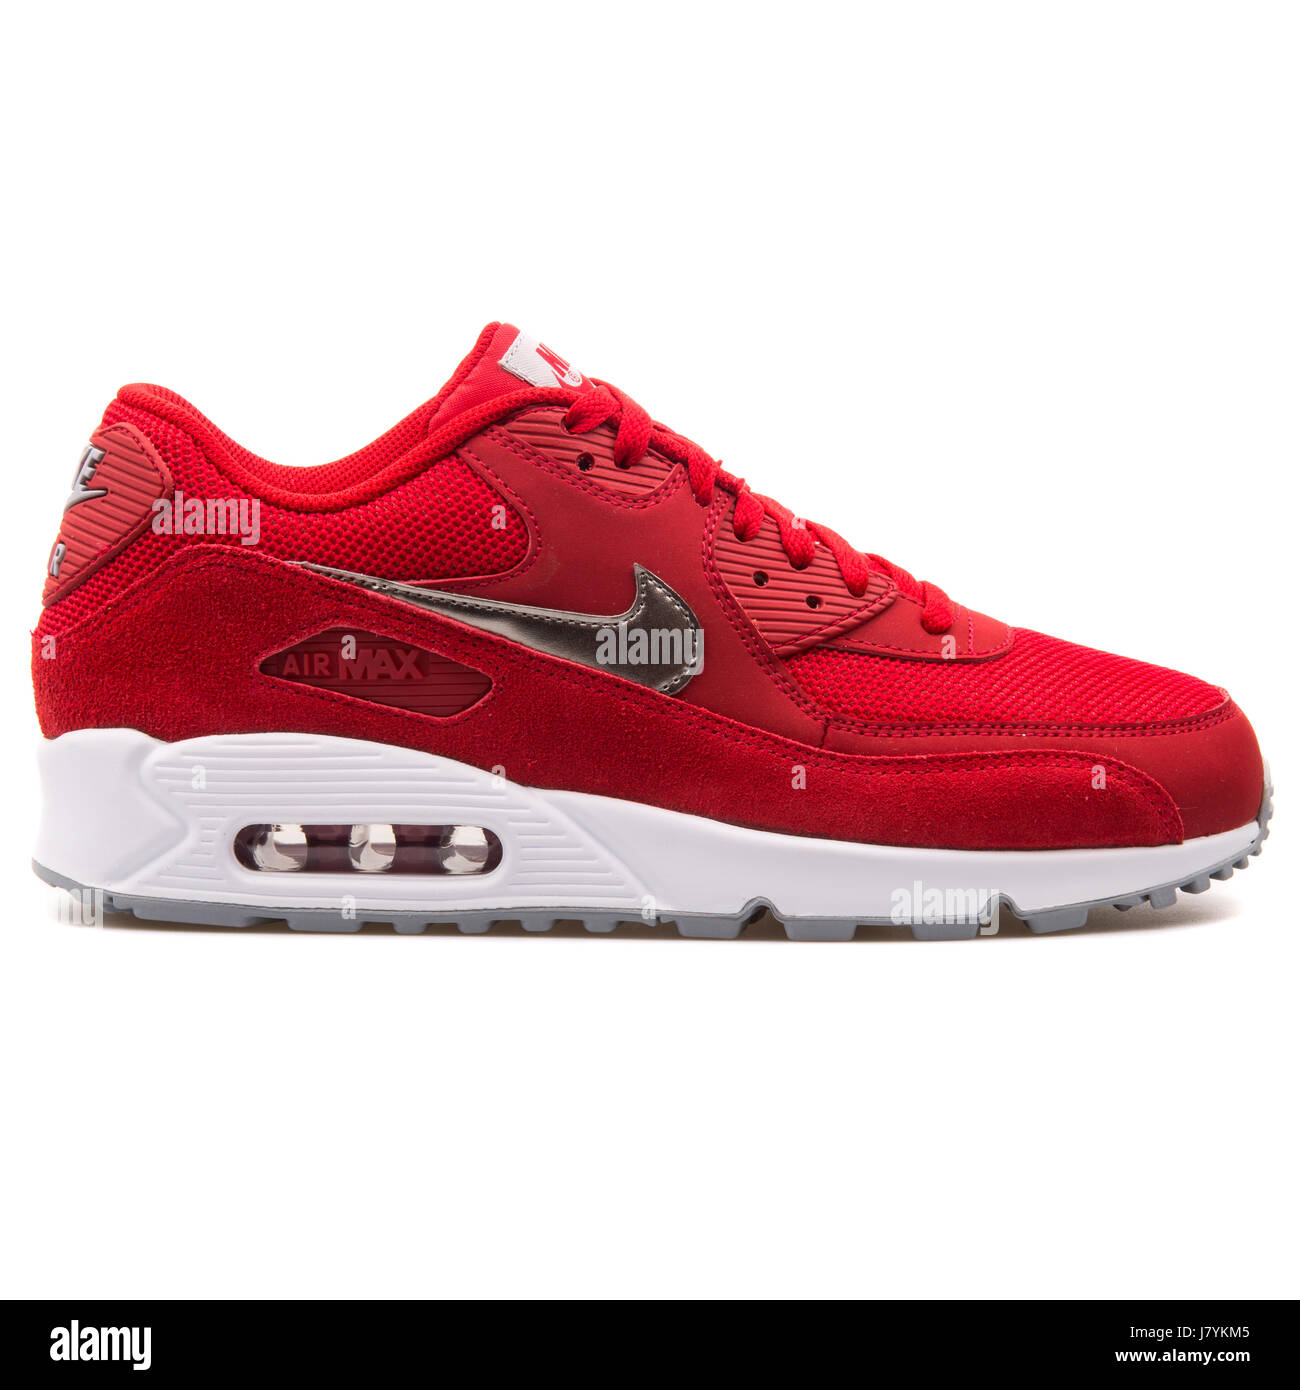 new product 43da8 92244 Nike Air Max 90 Essential Red Men's Running Sneakers - 537384-602 ...